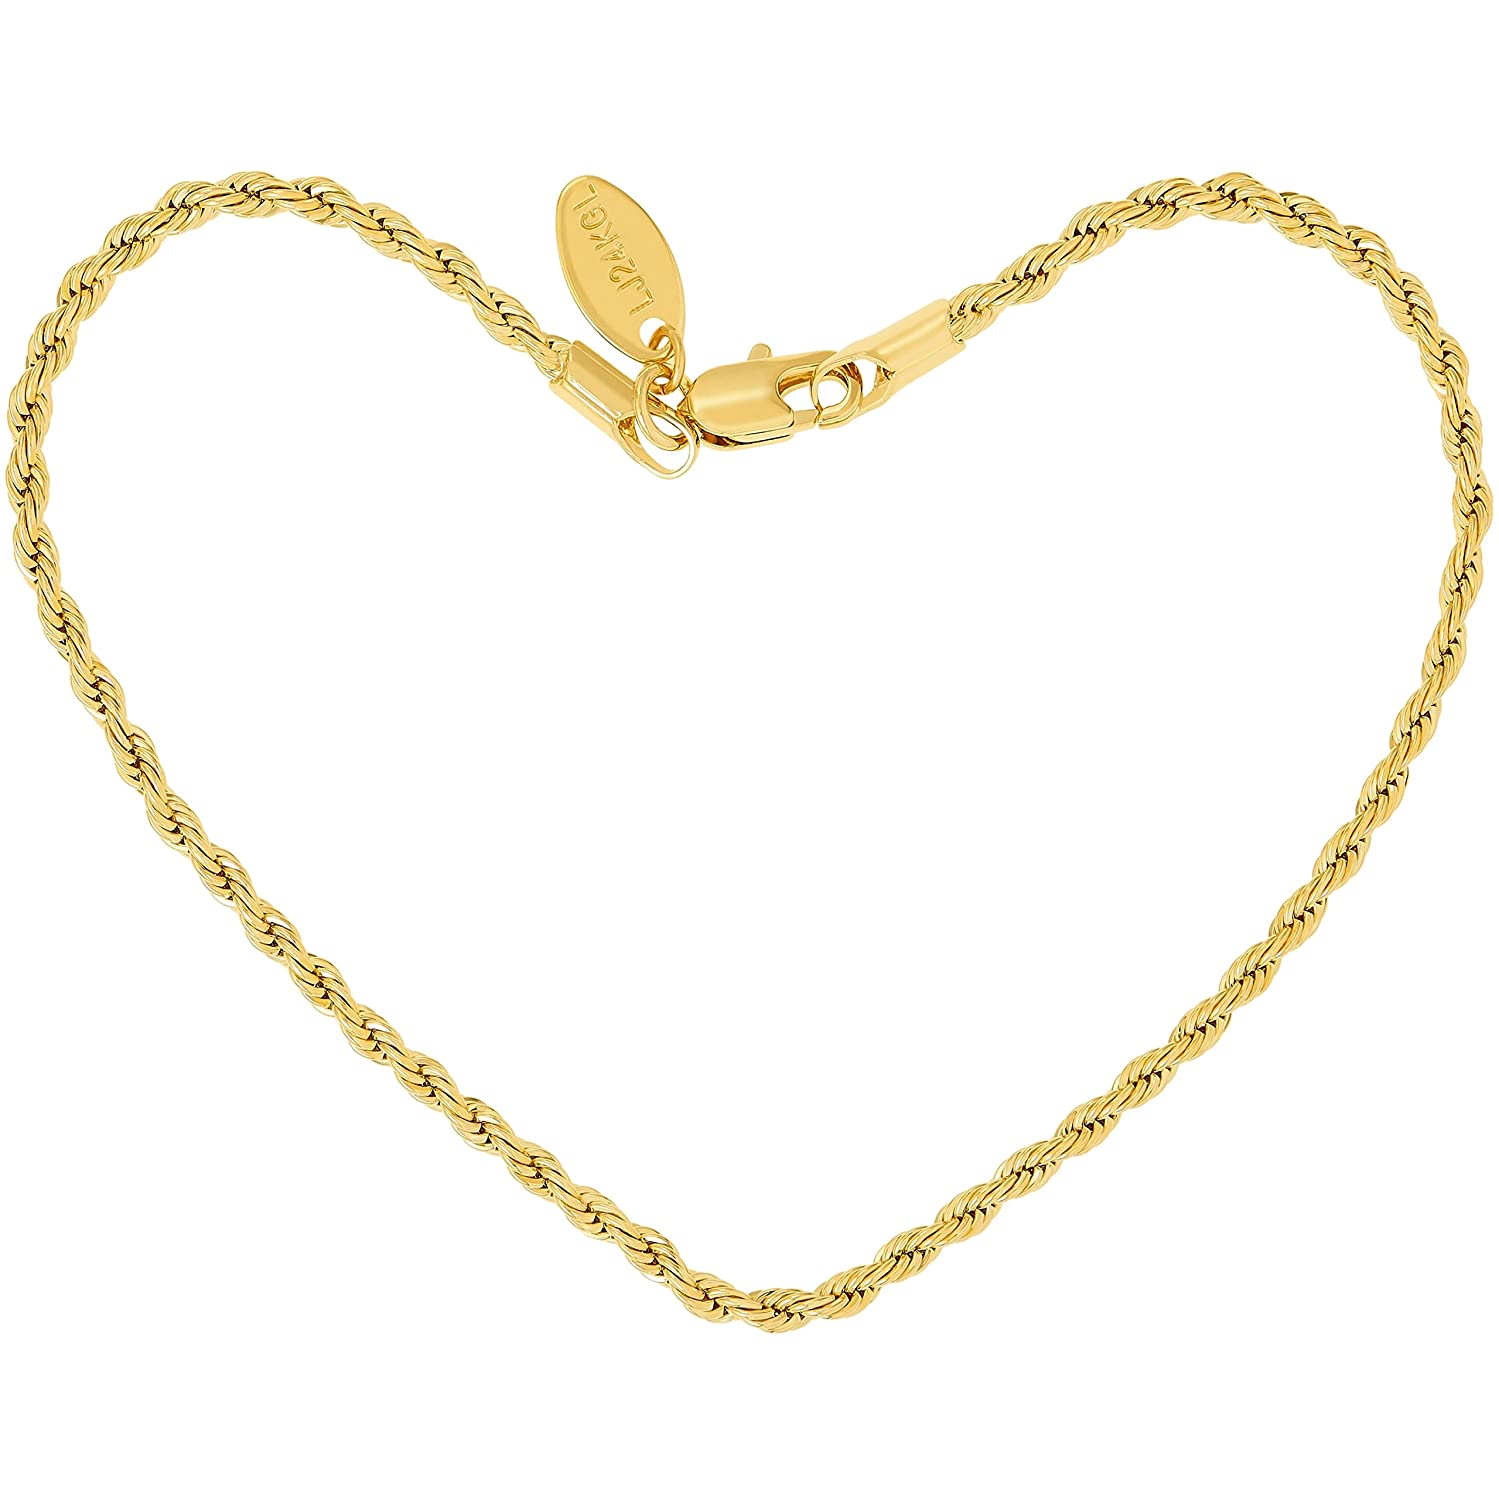 Lifetime Jewelry Anklets for Women Men Teens and Kids - 24K Gold Plated 2mm Rope Chain - Durable Foot Jewelry for Beach or Party - Cute Yellow Gold Ankle Bracelet - Anklet sizes are 9 10 and 11 inches Lifetime Products Group 2mm Rope Chain Anklet